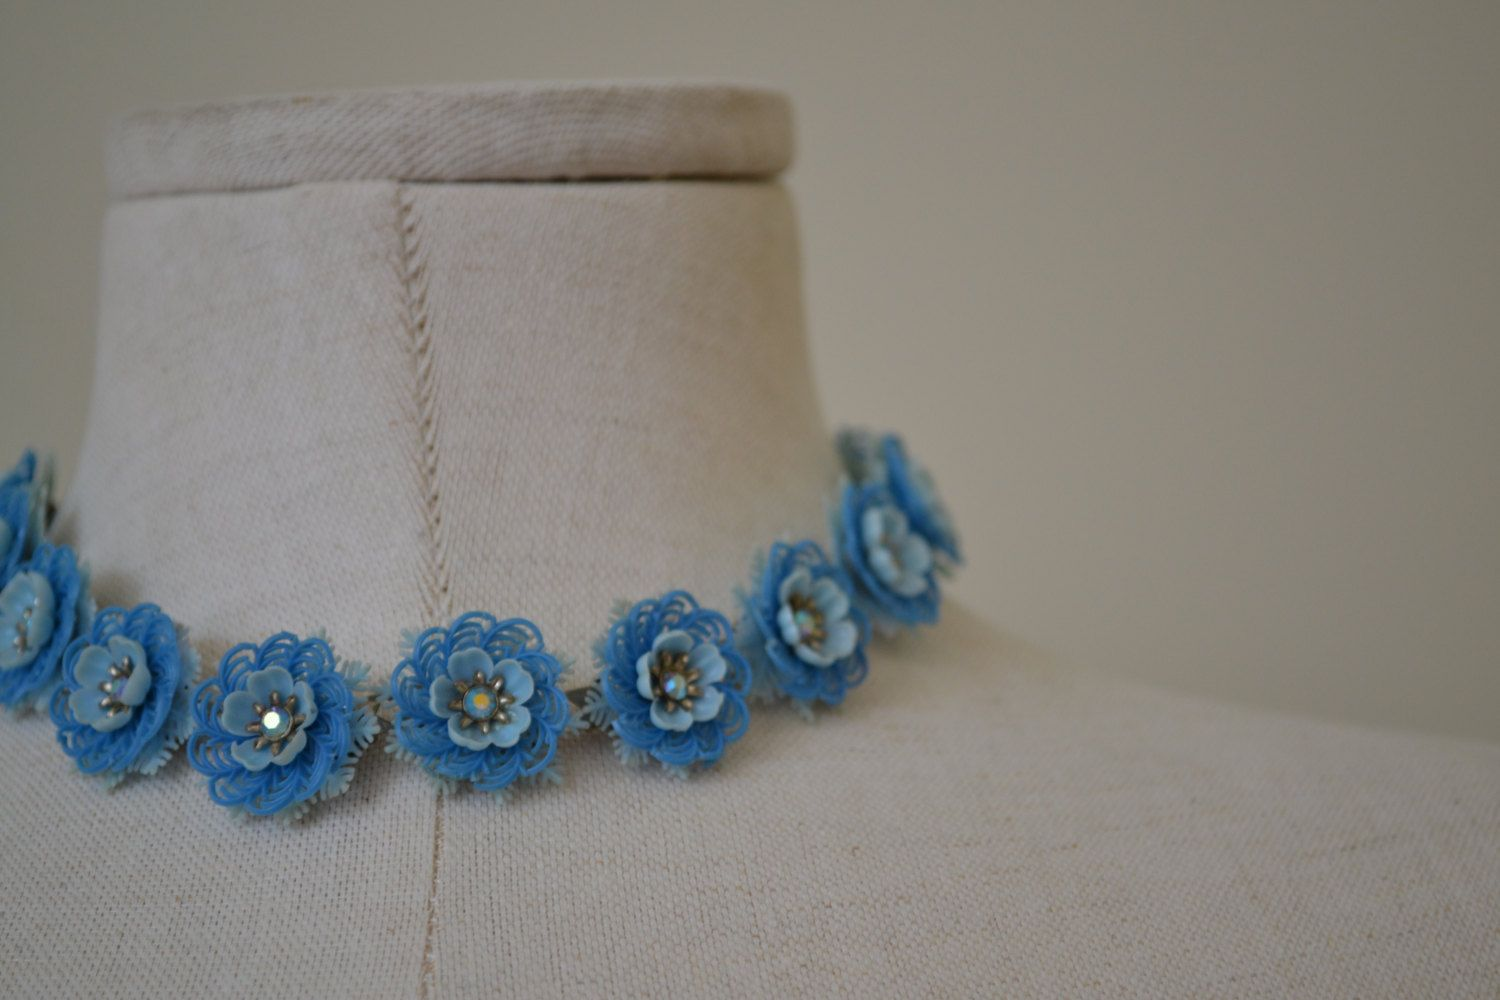 "1950's two tone blue plastic flower choker with irridescent rhinestone center 16.5"" maximum -prom or summer beach necklace by LulaVintageMN on Etsy"